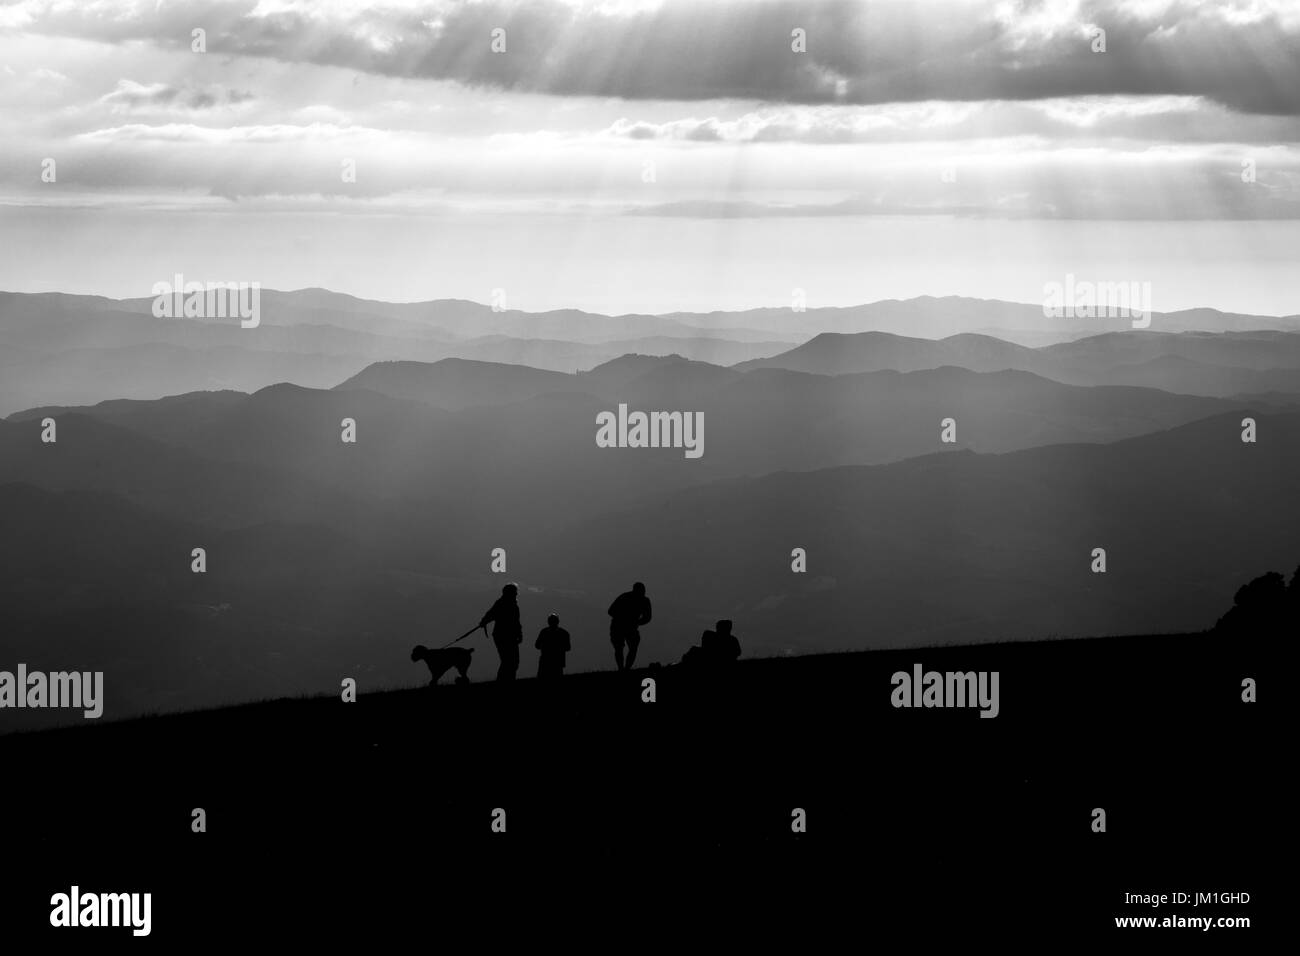 Some people and a dog on top of a mountain, with other mountains and hills in the background, and sunrays coming out of the clouds - Stock Image